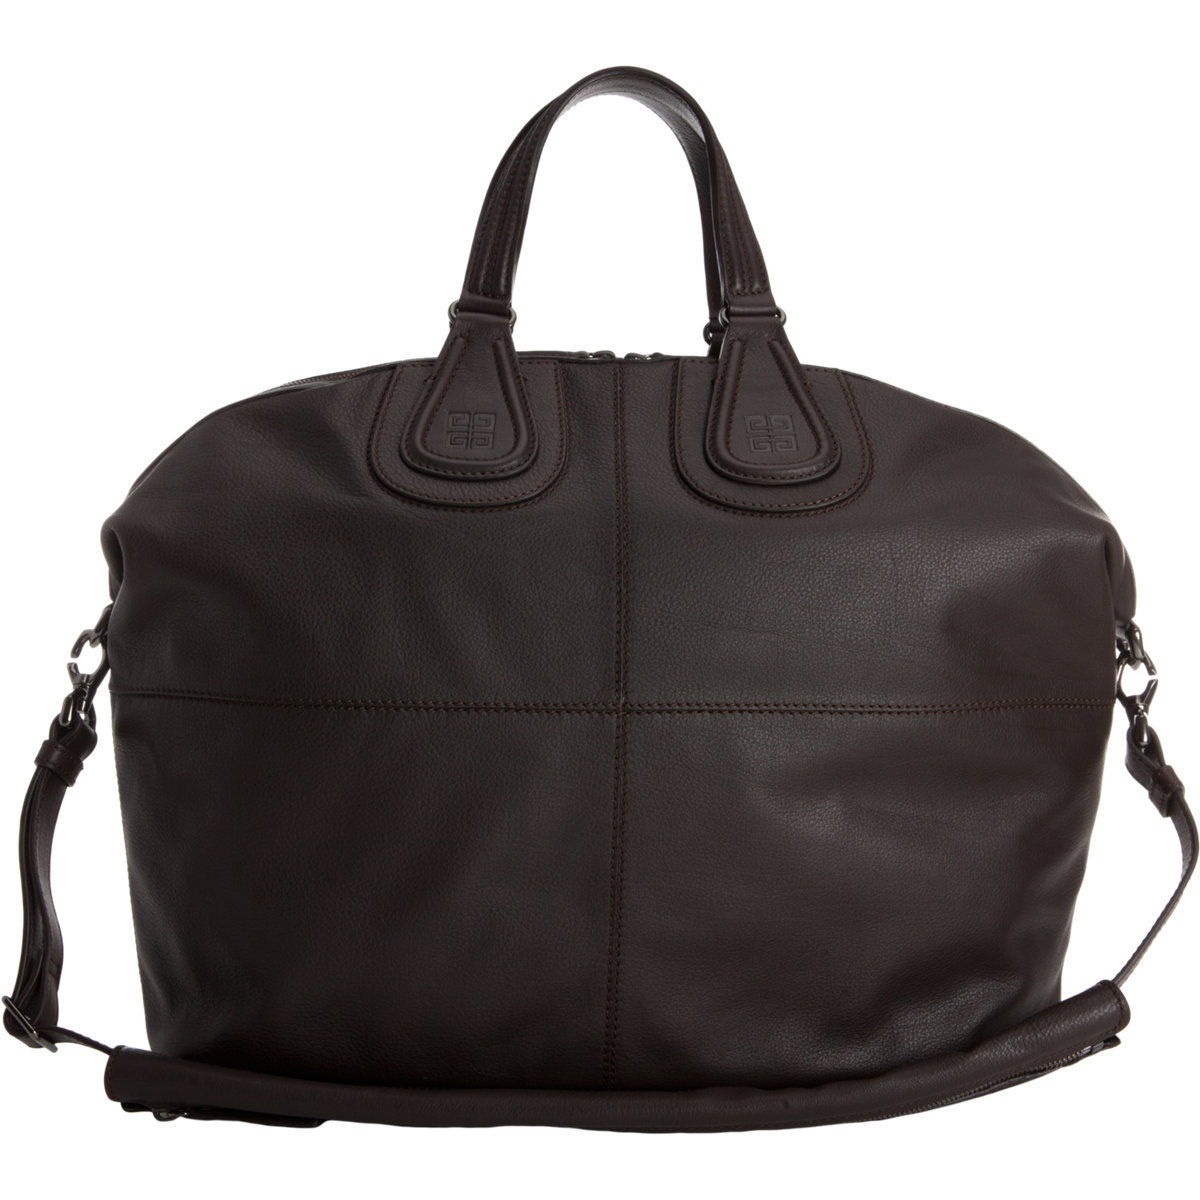 Givenchy large nightingale bag at barneys.com